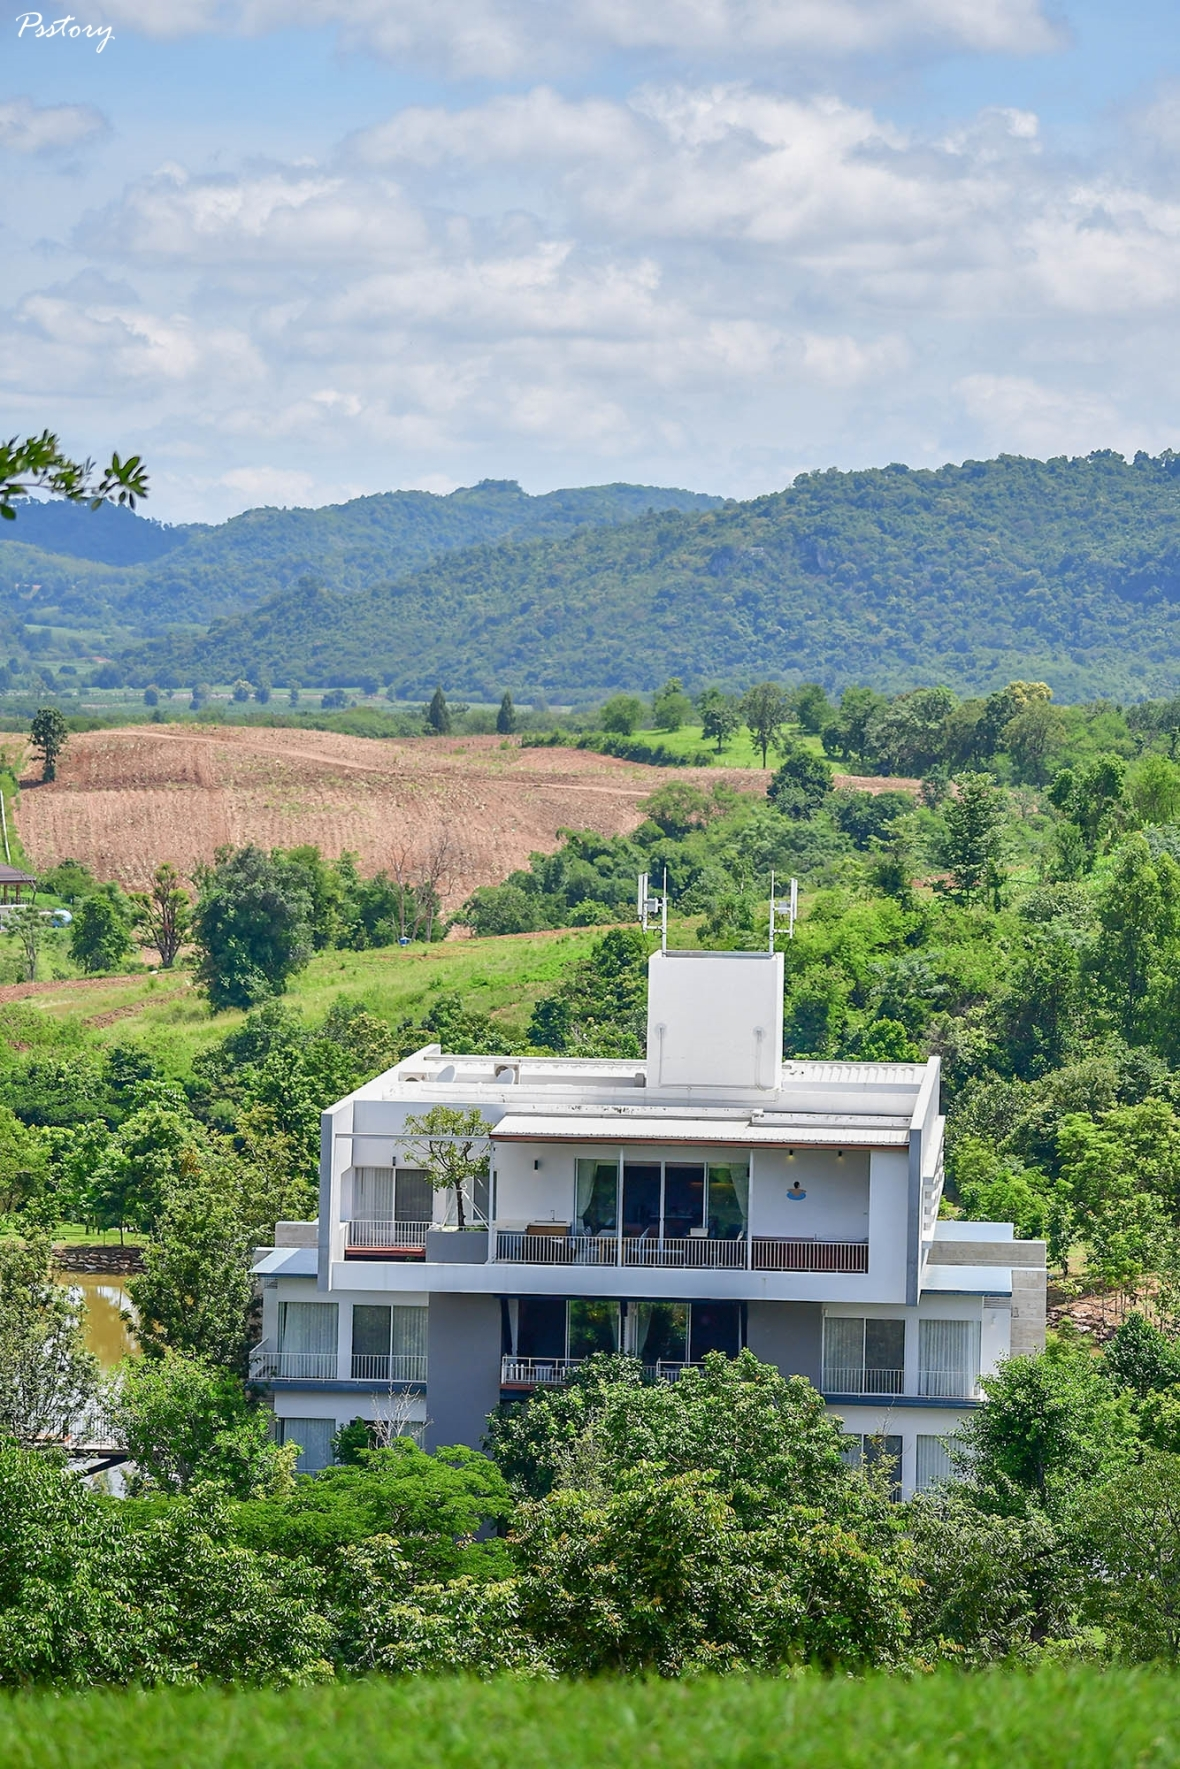 The Gallery Khao Yai Hotel and Residence (88)